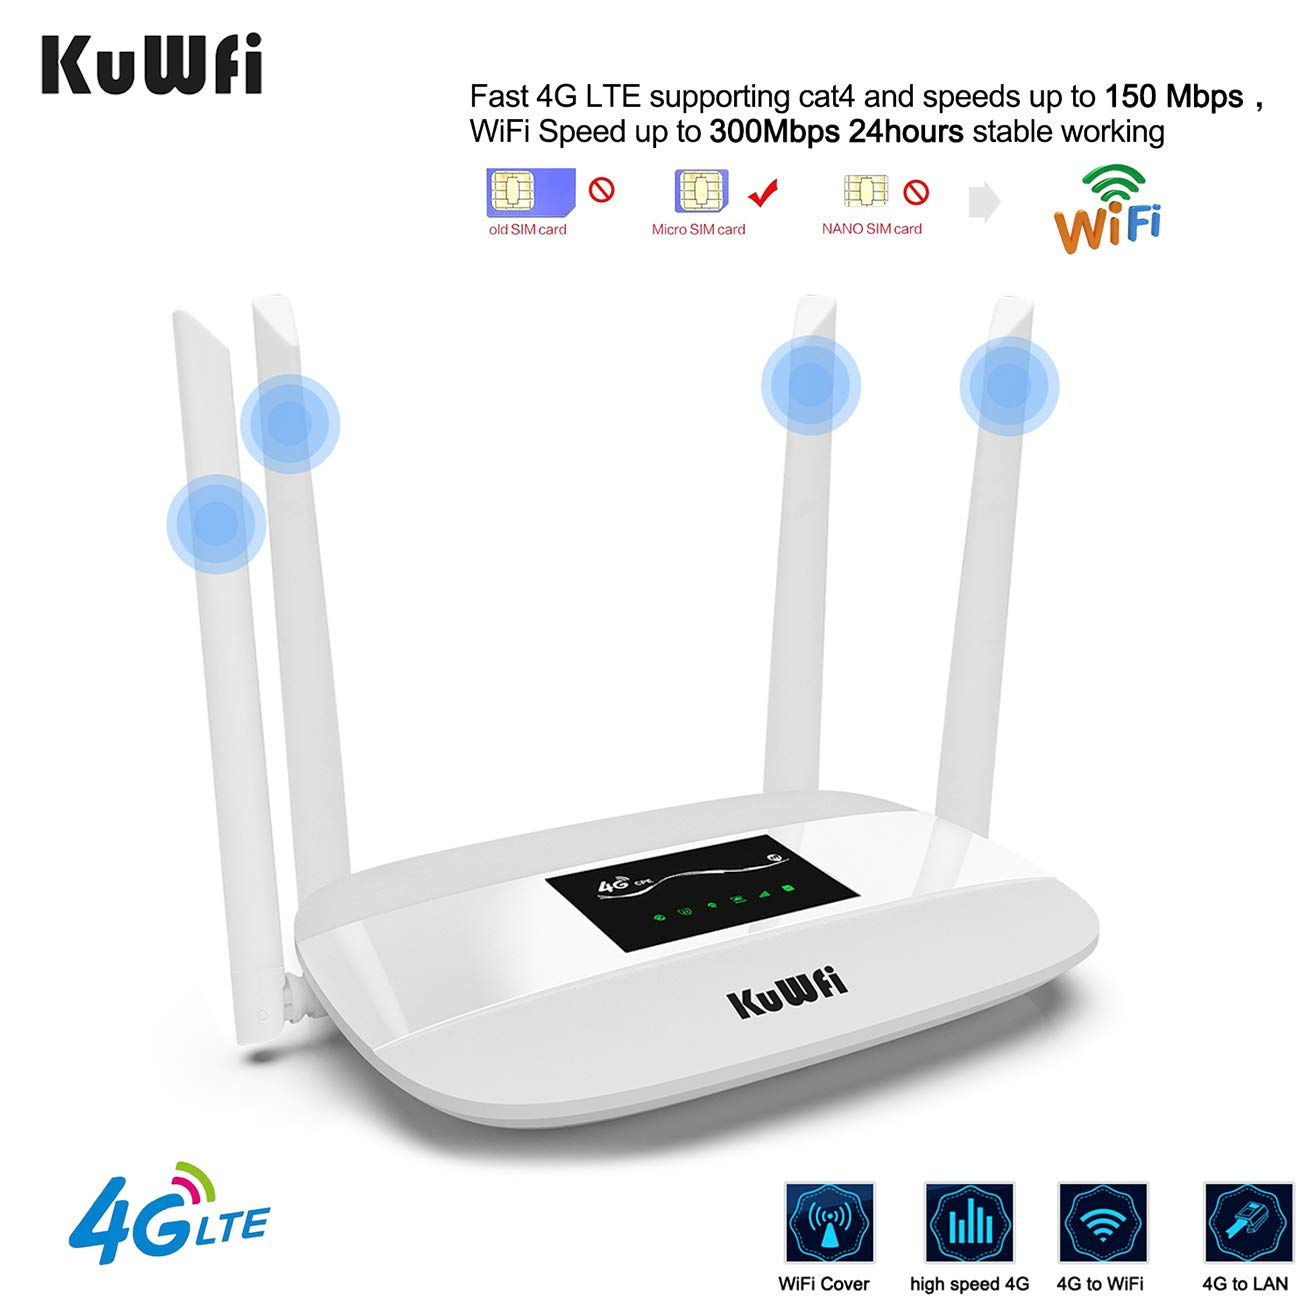 KuWFi 4G LTE CPE Wireless WiFi Router 300Mbps Unlocked with SIM Card Solt with 4pcs Antenna for CA/USA/MX and a Few Central American Countries by KuWFi